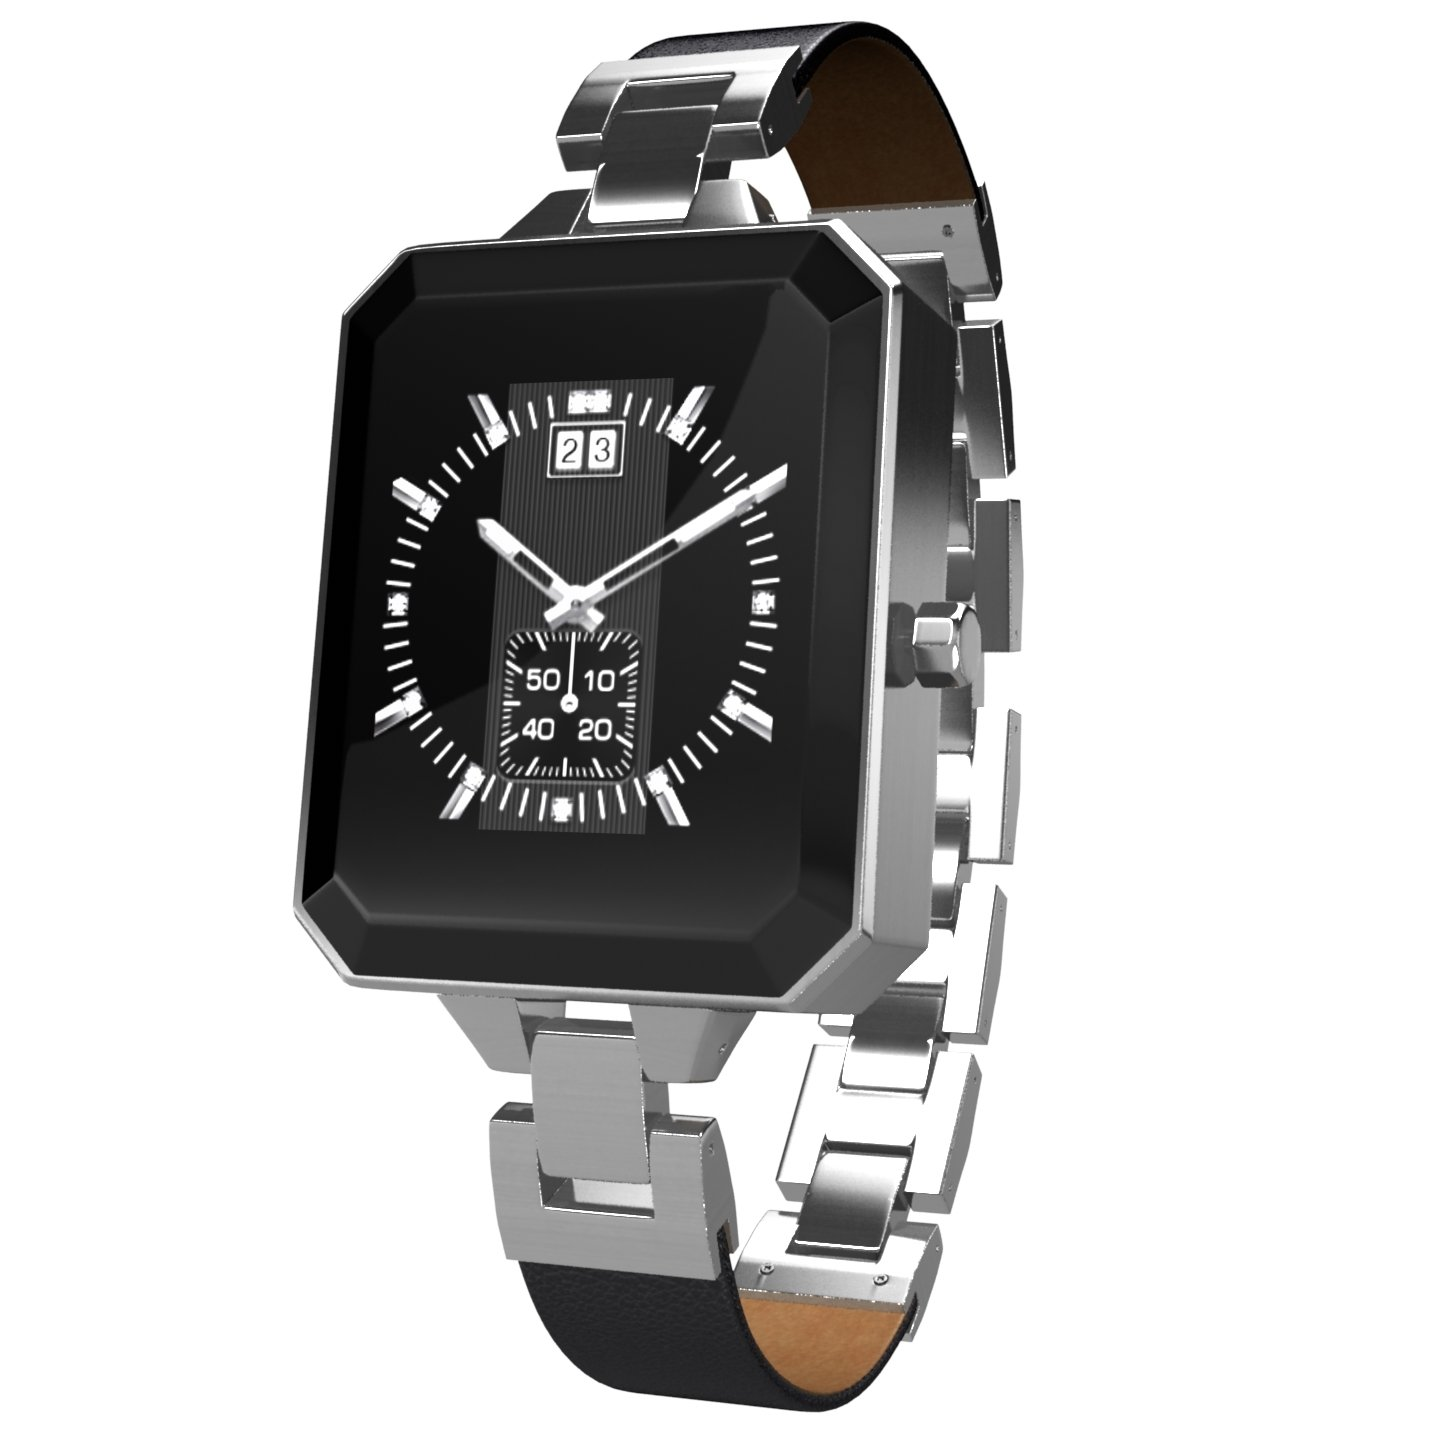 KARACUS K2MS METALLIC SILVER DIONE SMART WATCH WITH 6 PATTERN